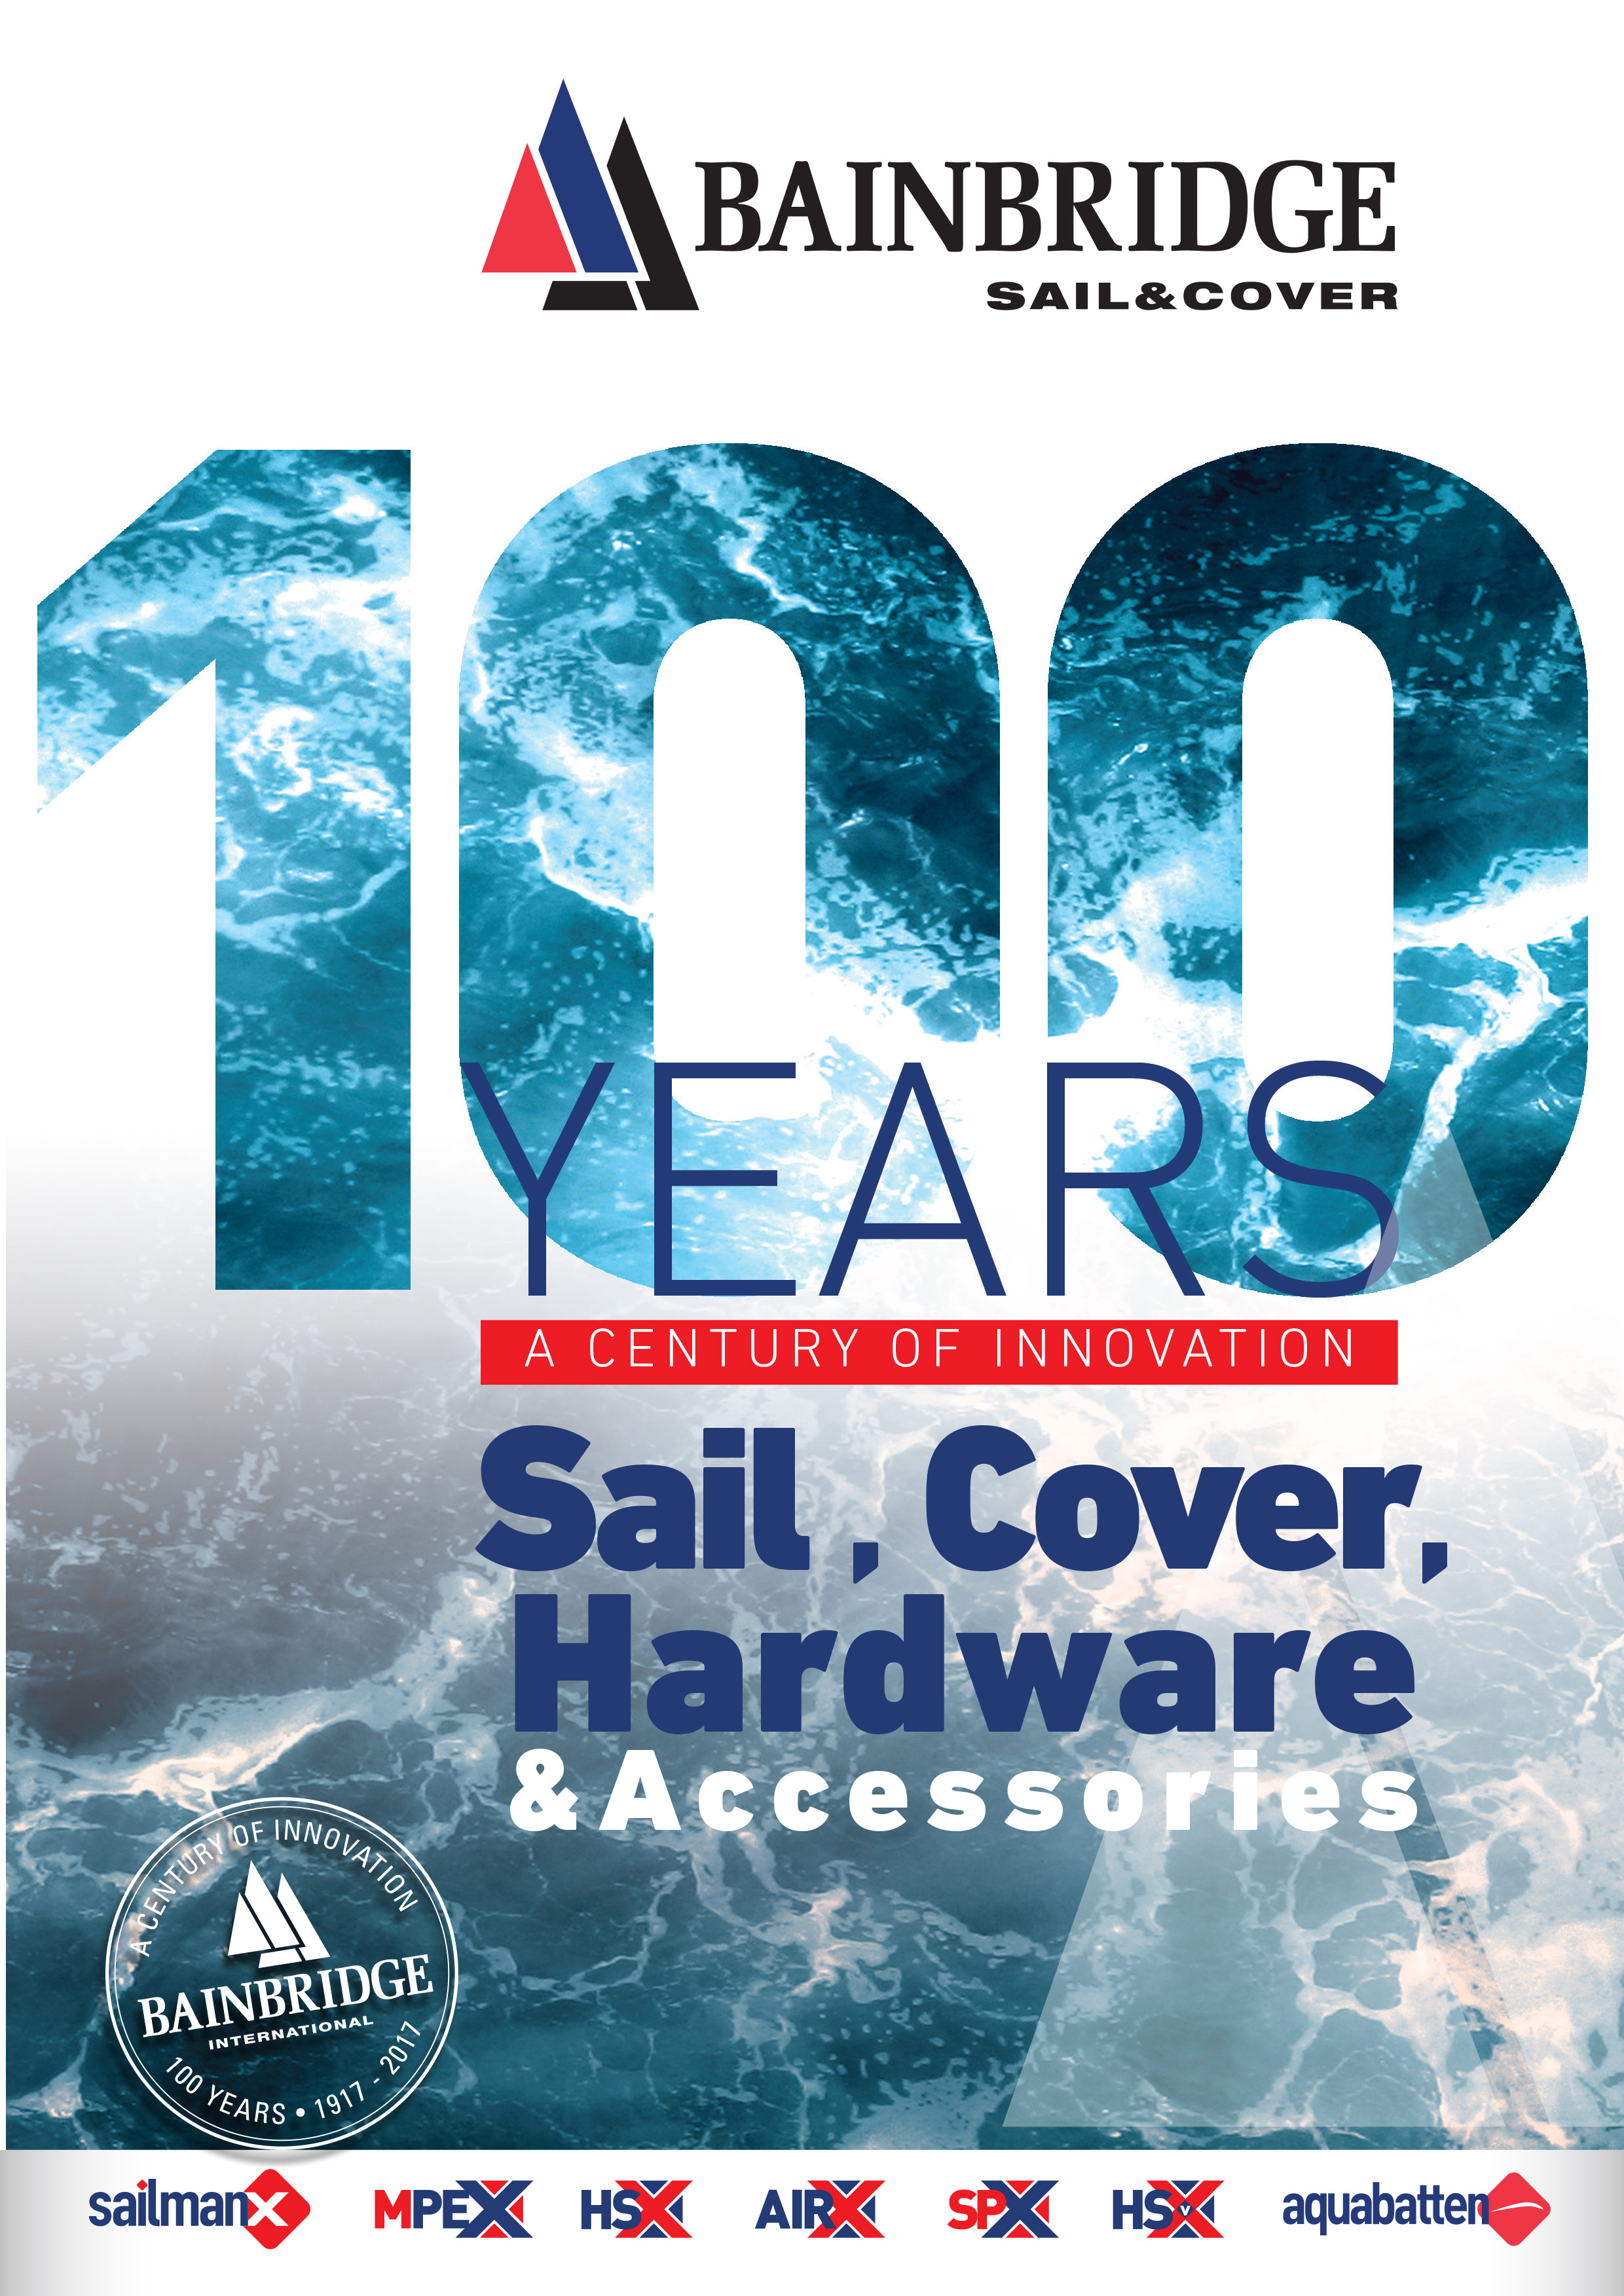 Front Cover of Sail & Cover Catalogue